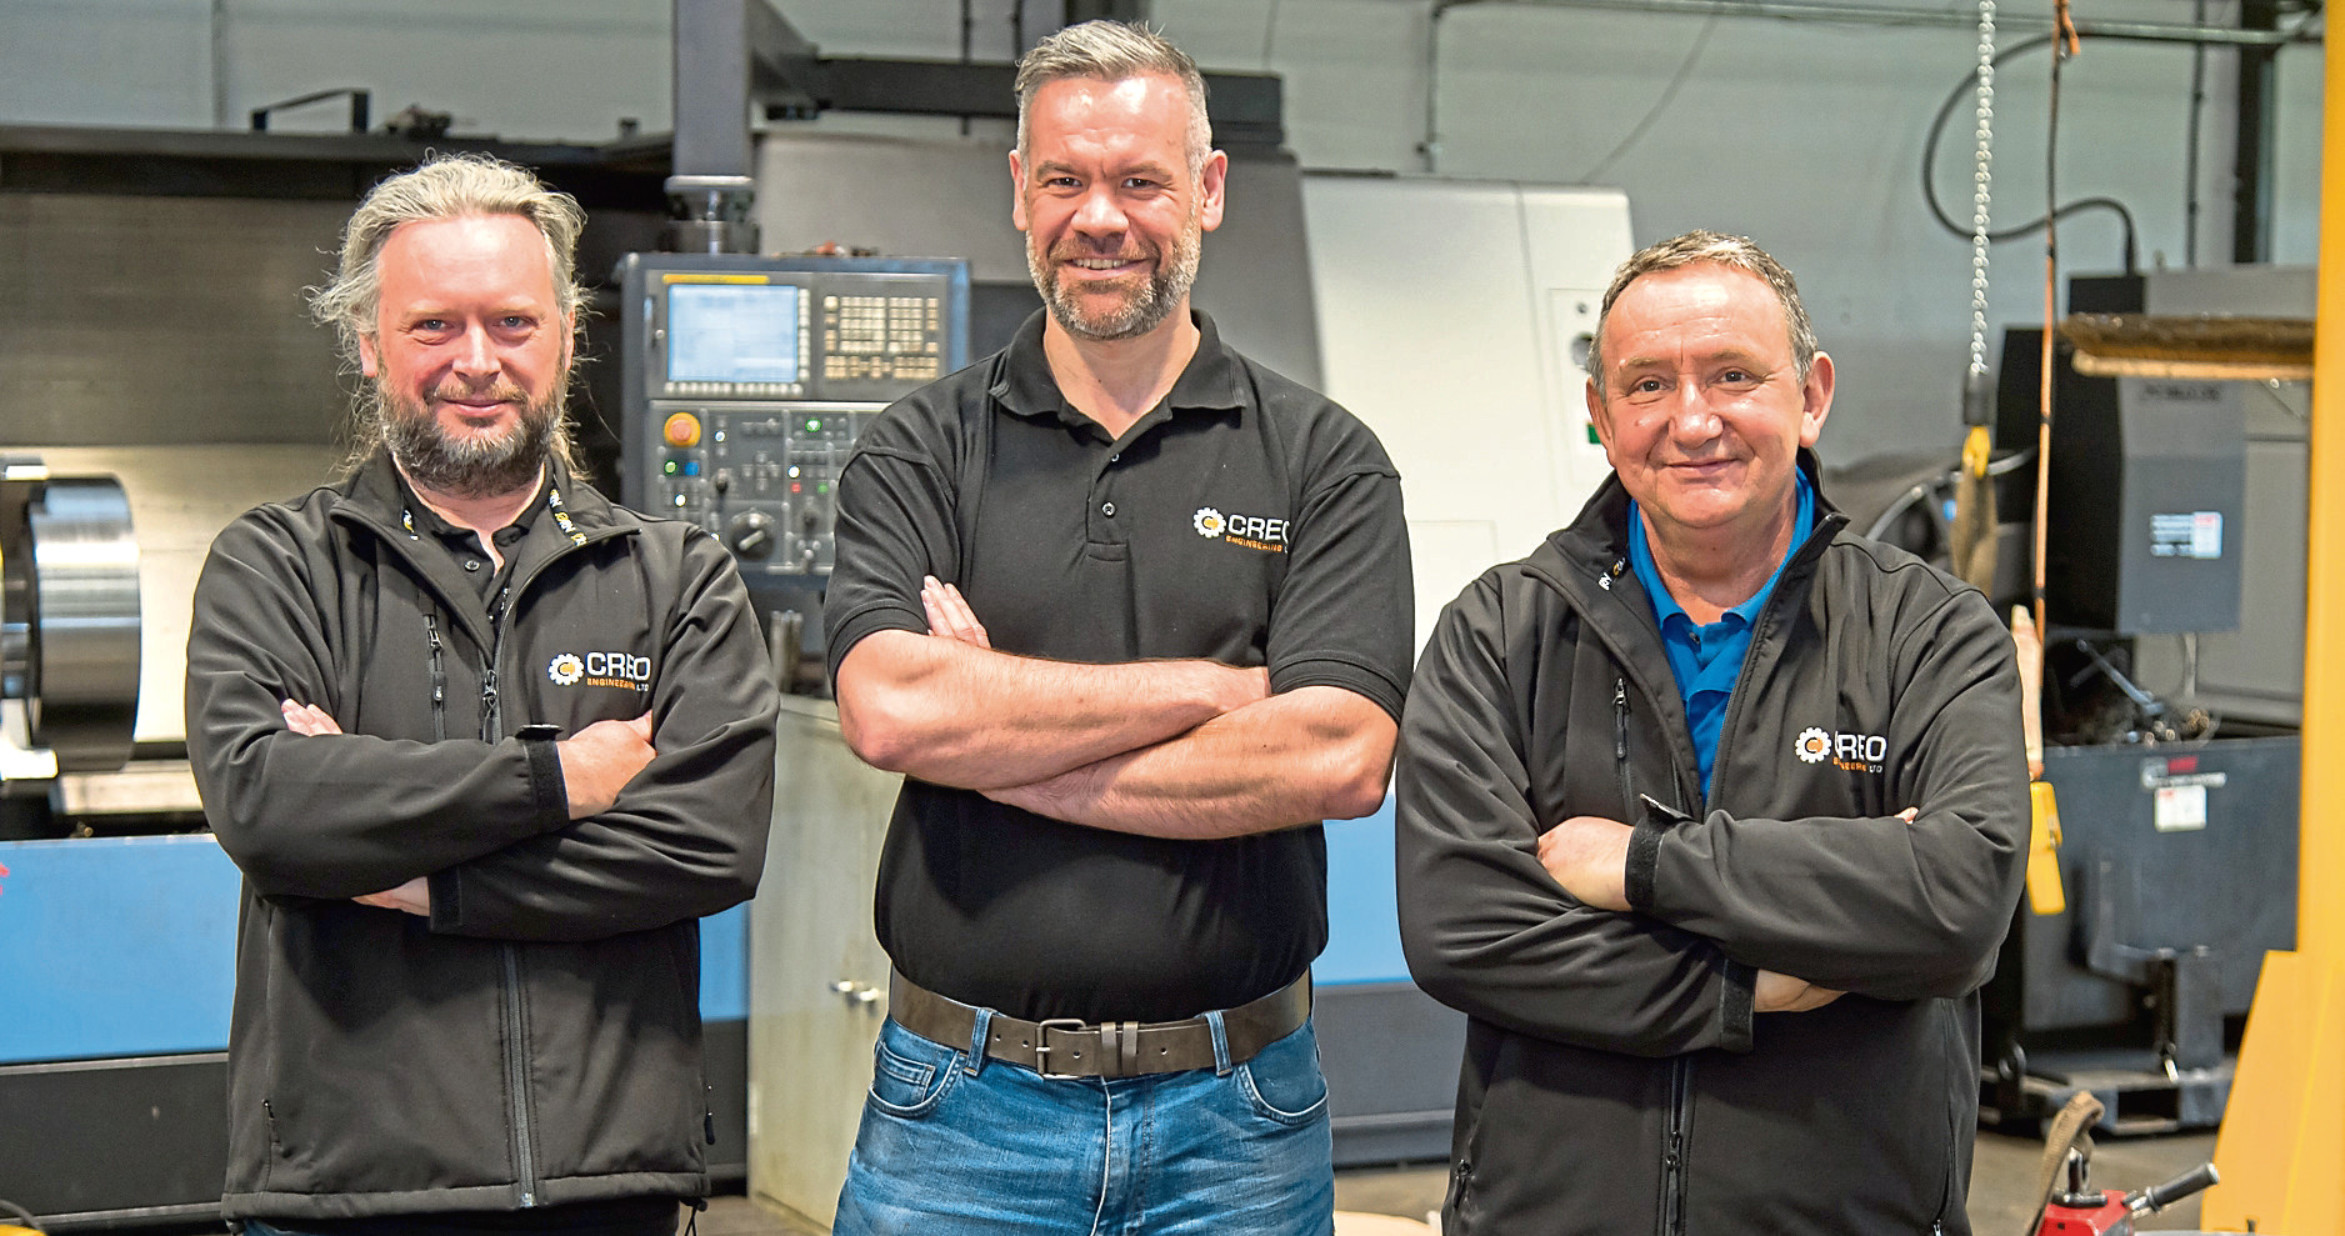 Three of the founders of Creo Engineering in Fife. l-r Brian Menagh, Iain Bickett, Graham Dudgeon.